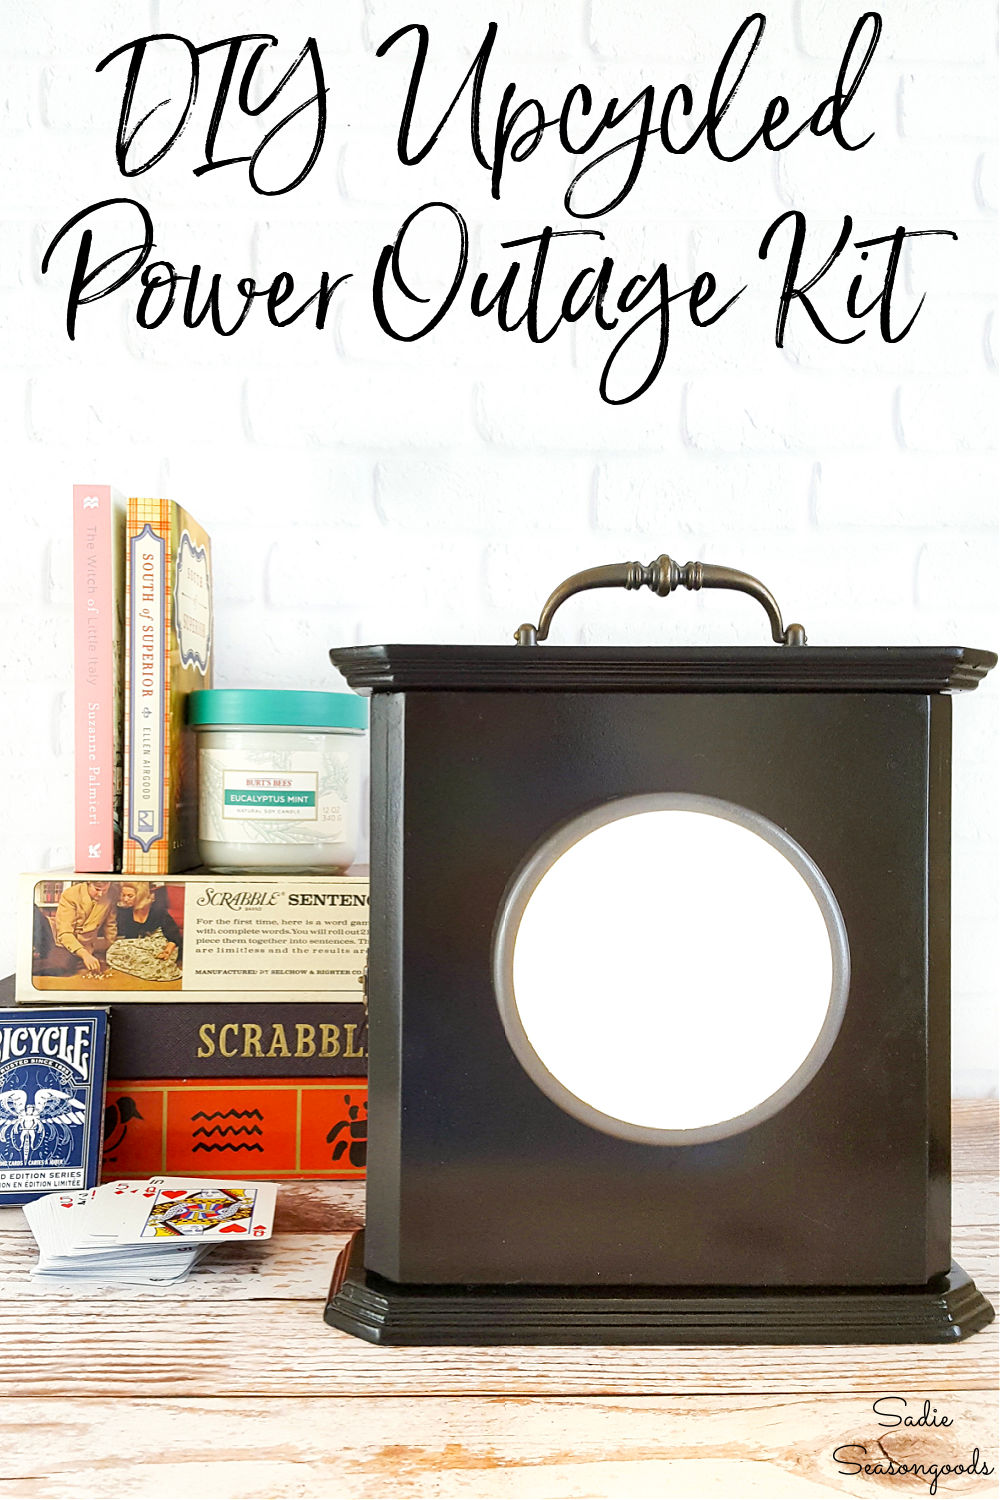 emergency lantern and power outage kit